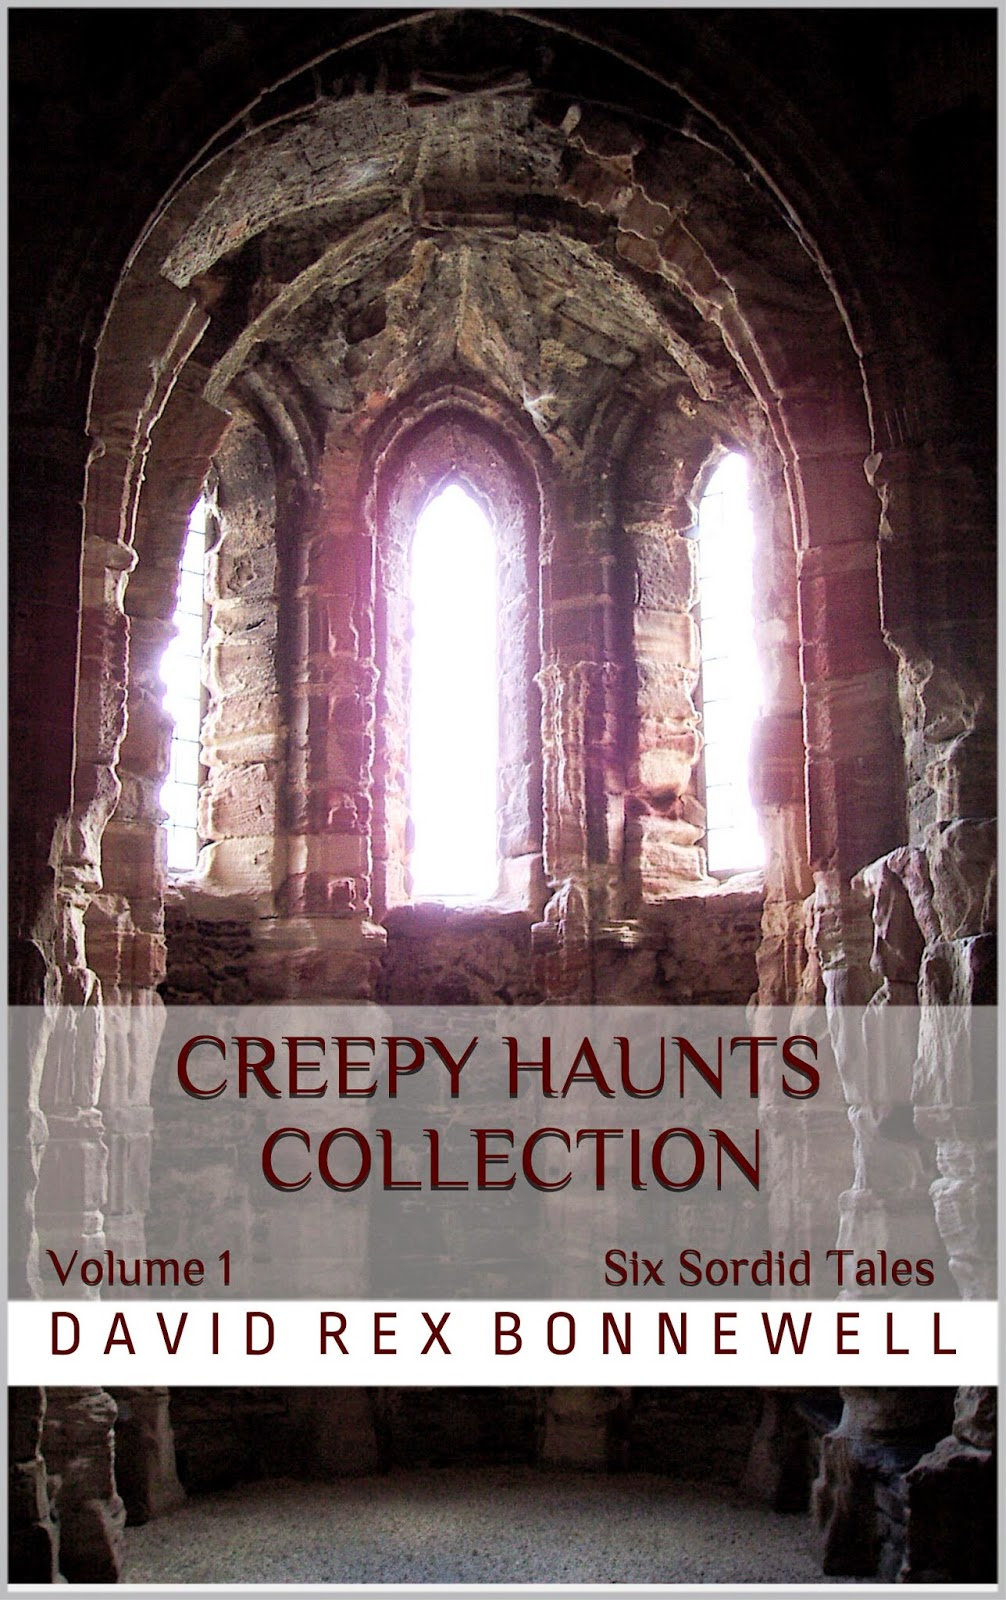 http://www.amazon.com/Creepy-Haunts-Collection-Sordid-Tales-ebook/dp/B00KHRN1UW